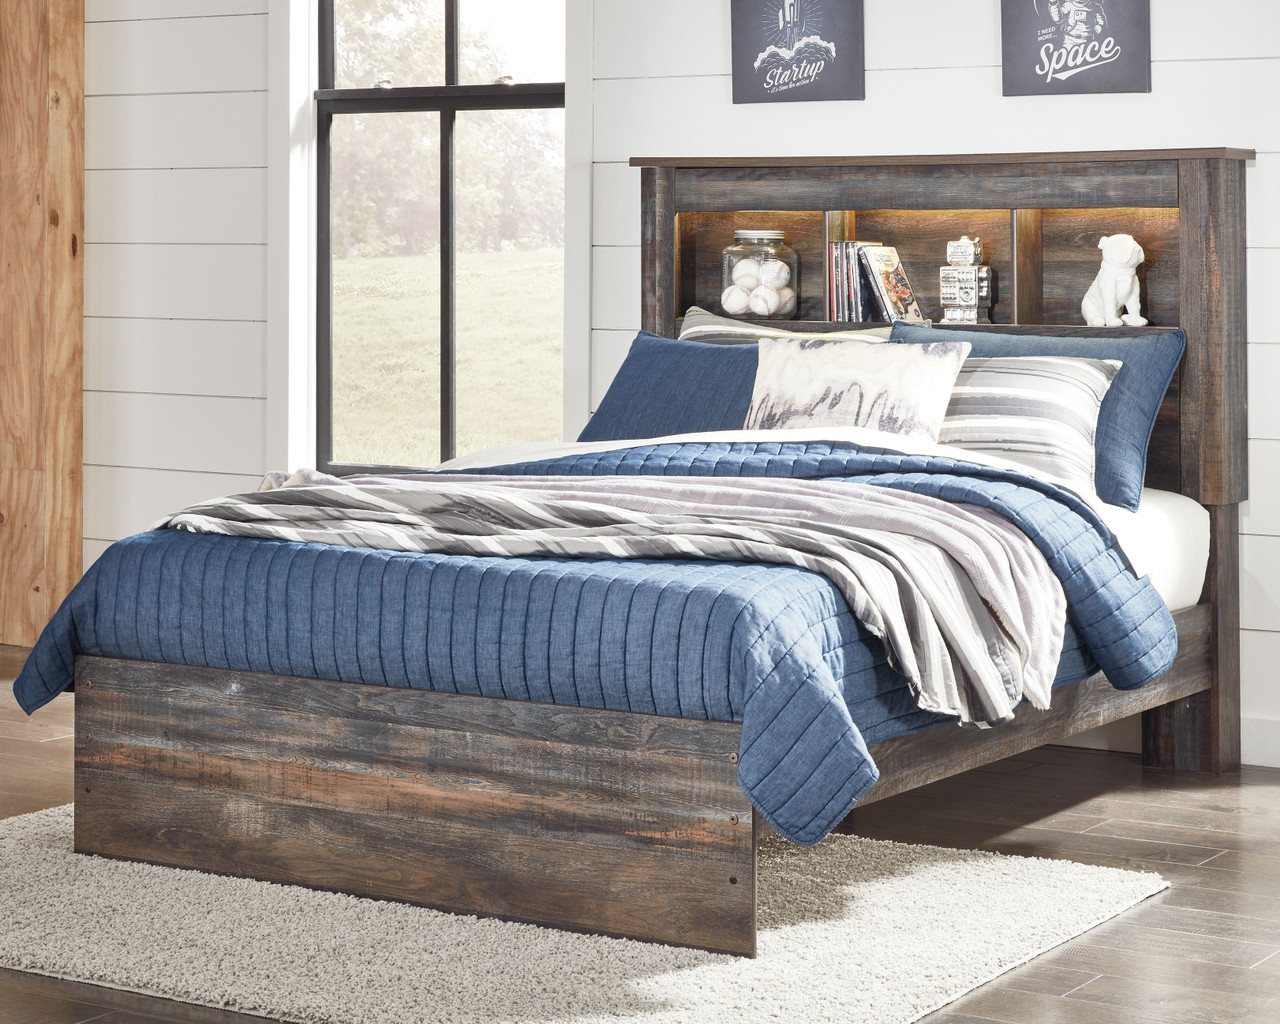 The Drystan Multi Full Bookcase Bed Available At Dayton Discount Furniture Serving Vandalia Kettering And Springfield Ohio